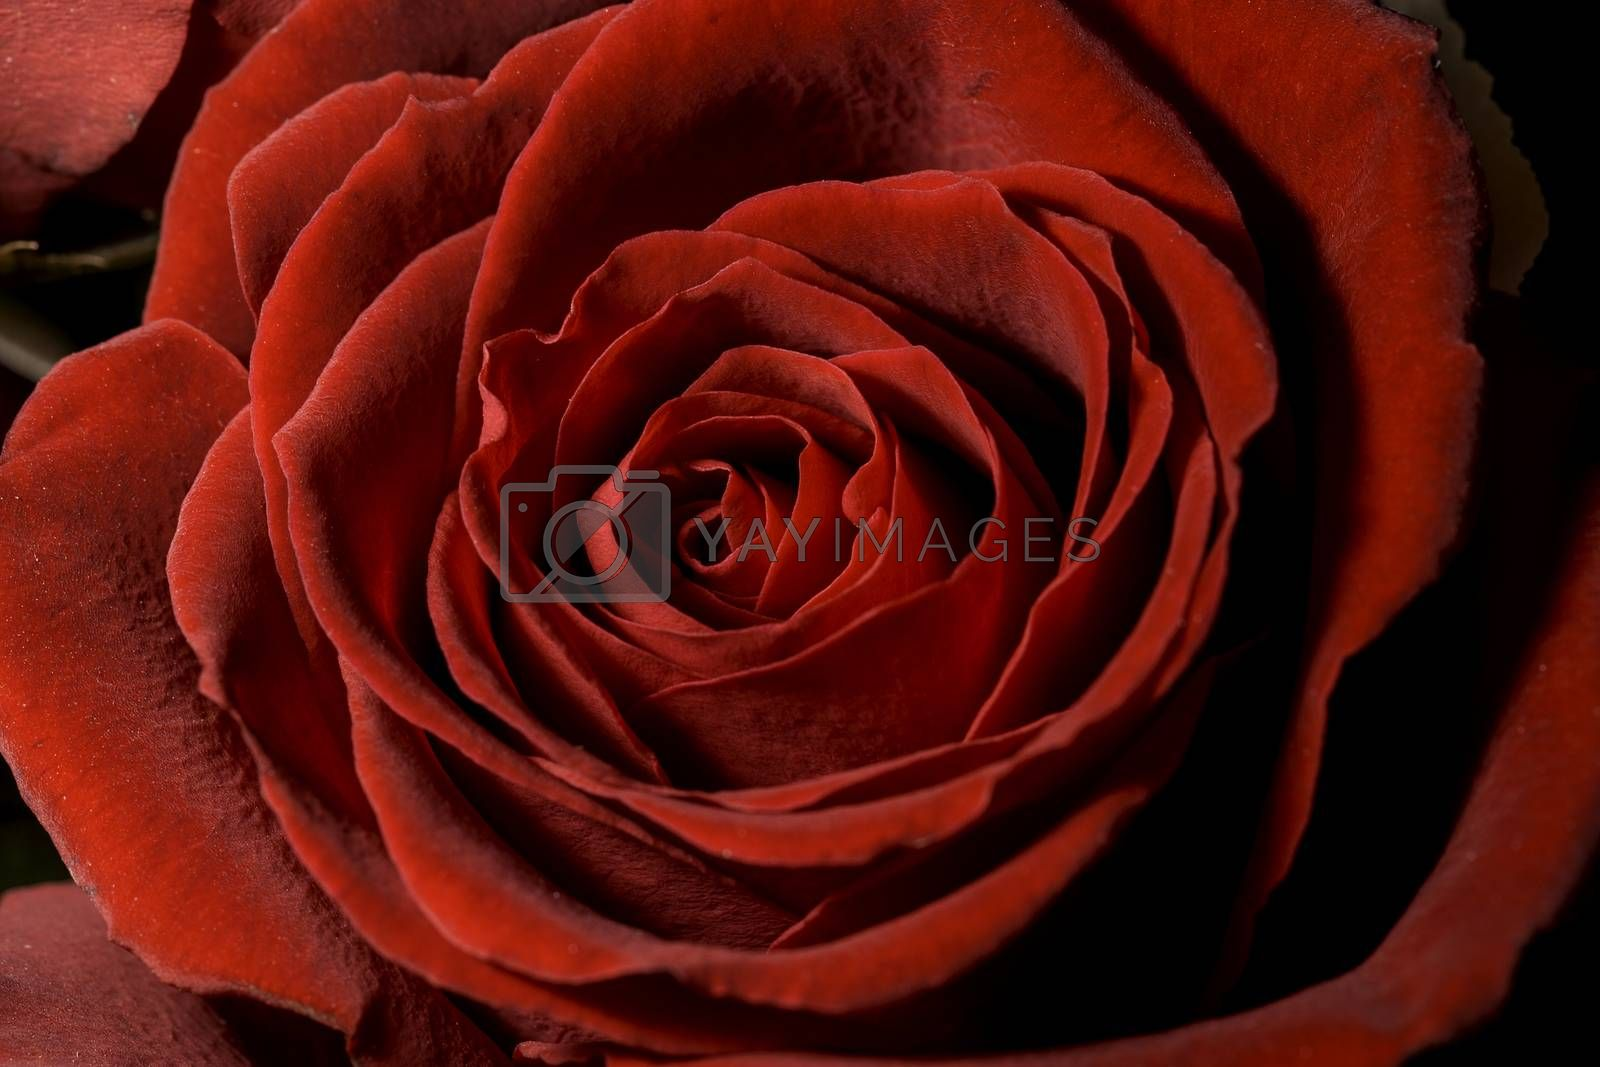 Red Rose Close Up by Emmoth